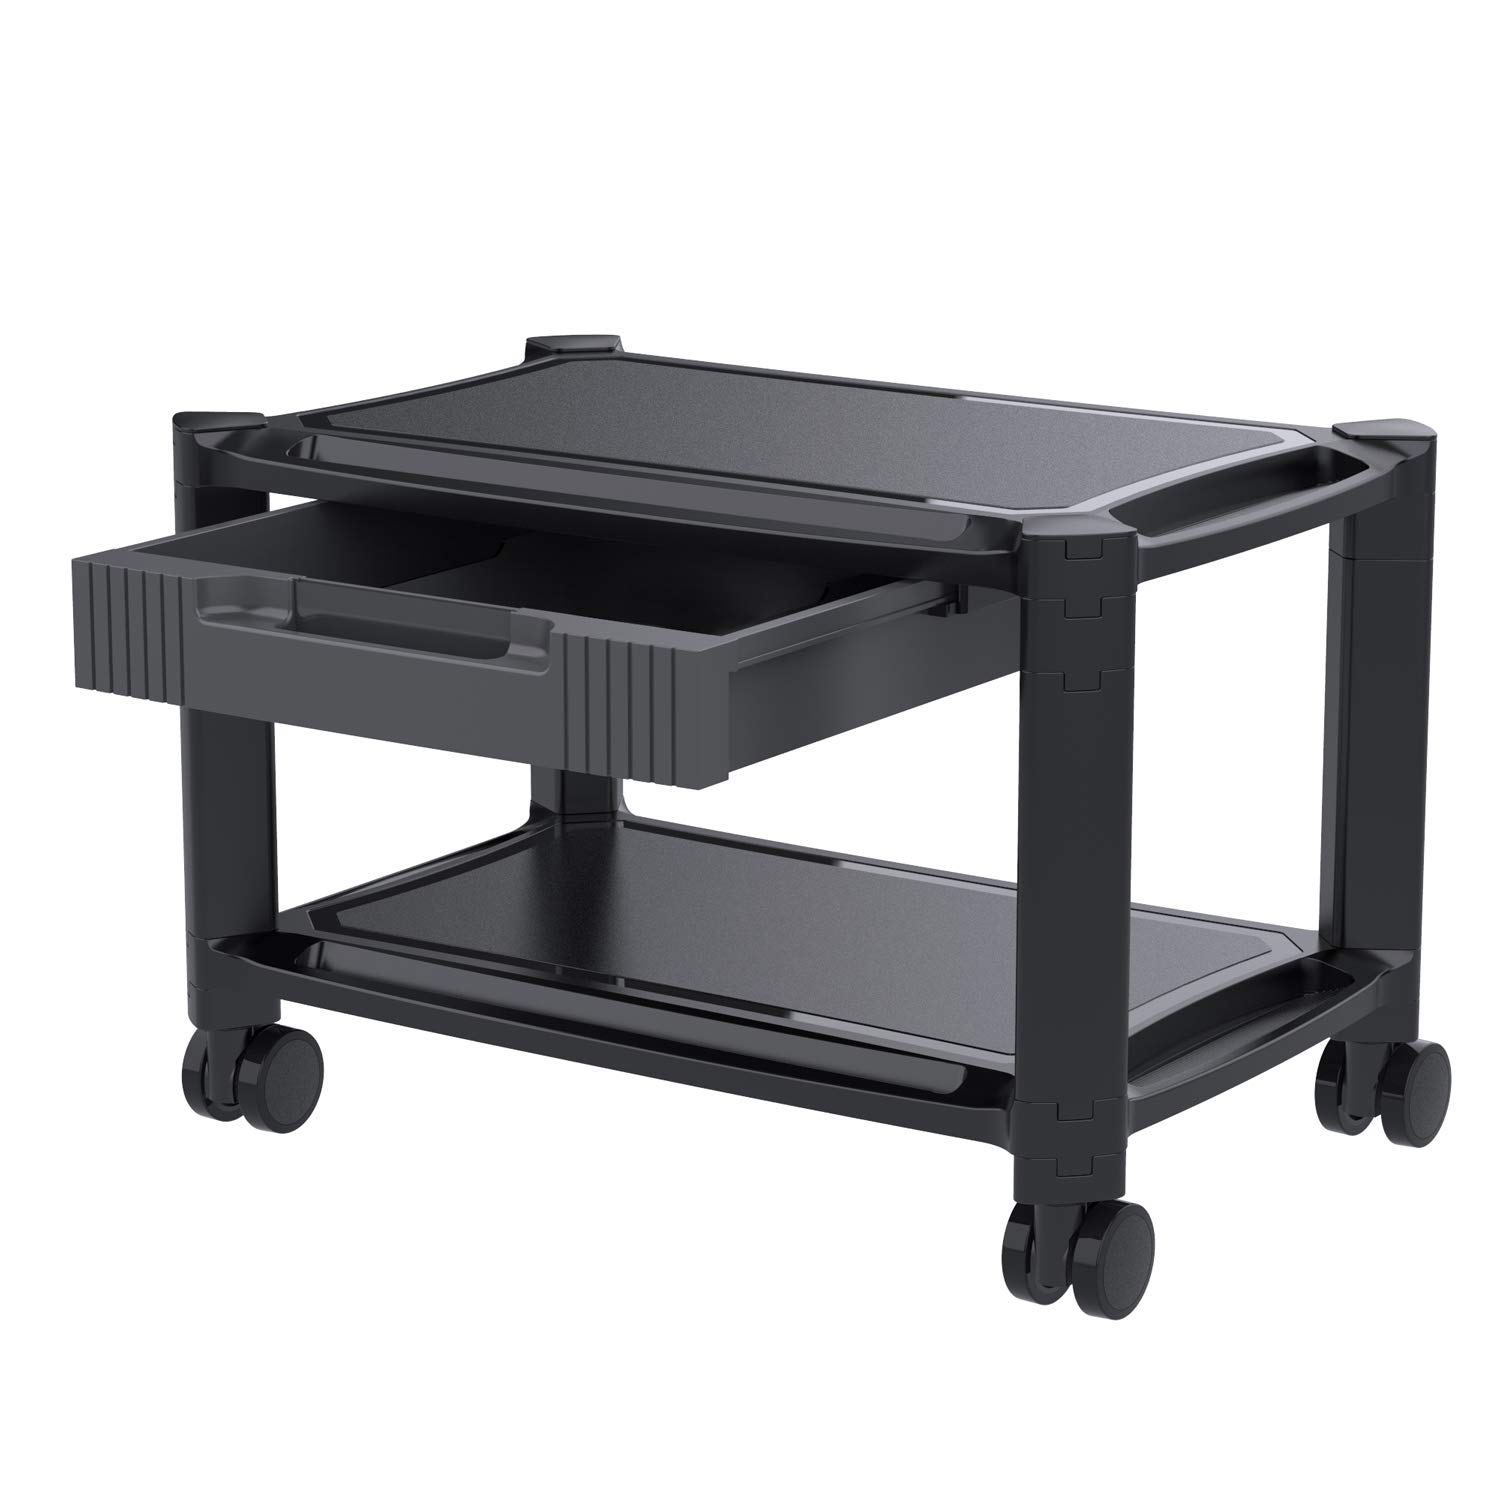 Printer Stand - Under Desk Printer Cart with 4 Rolling Wheels & Storage Drawer, Durable Printer Riser Shelf for Fax, Scanner, Office Supplies by HUANUO by HUANUO (Image #1)